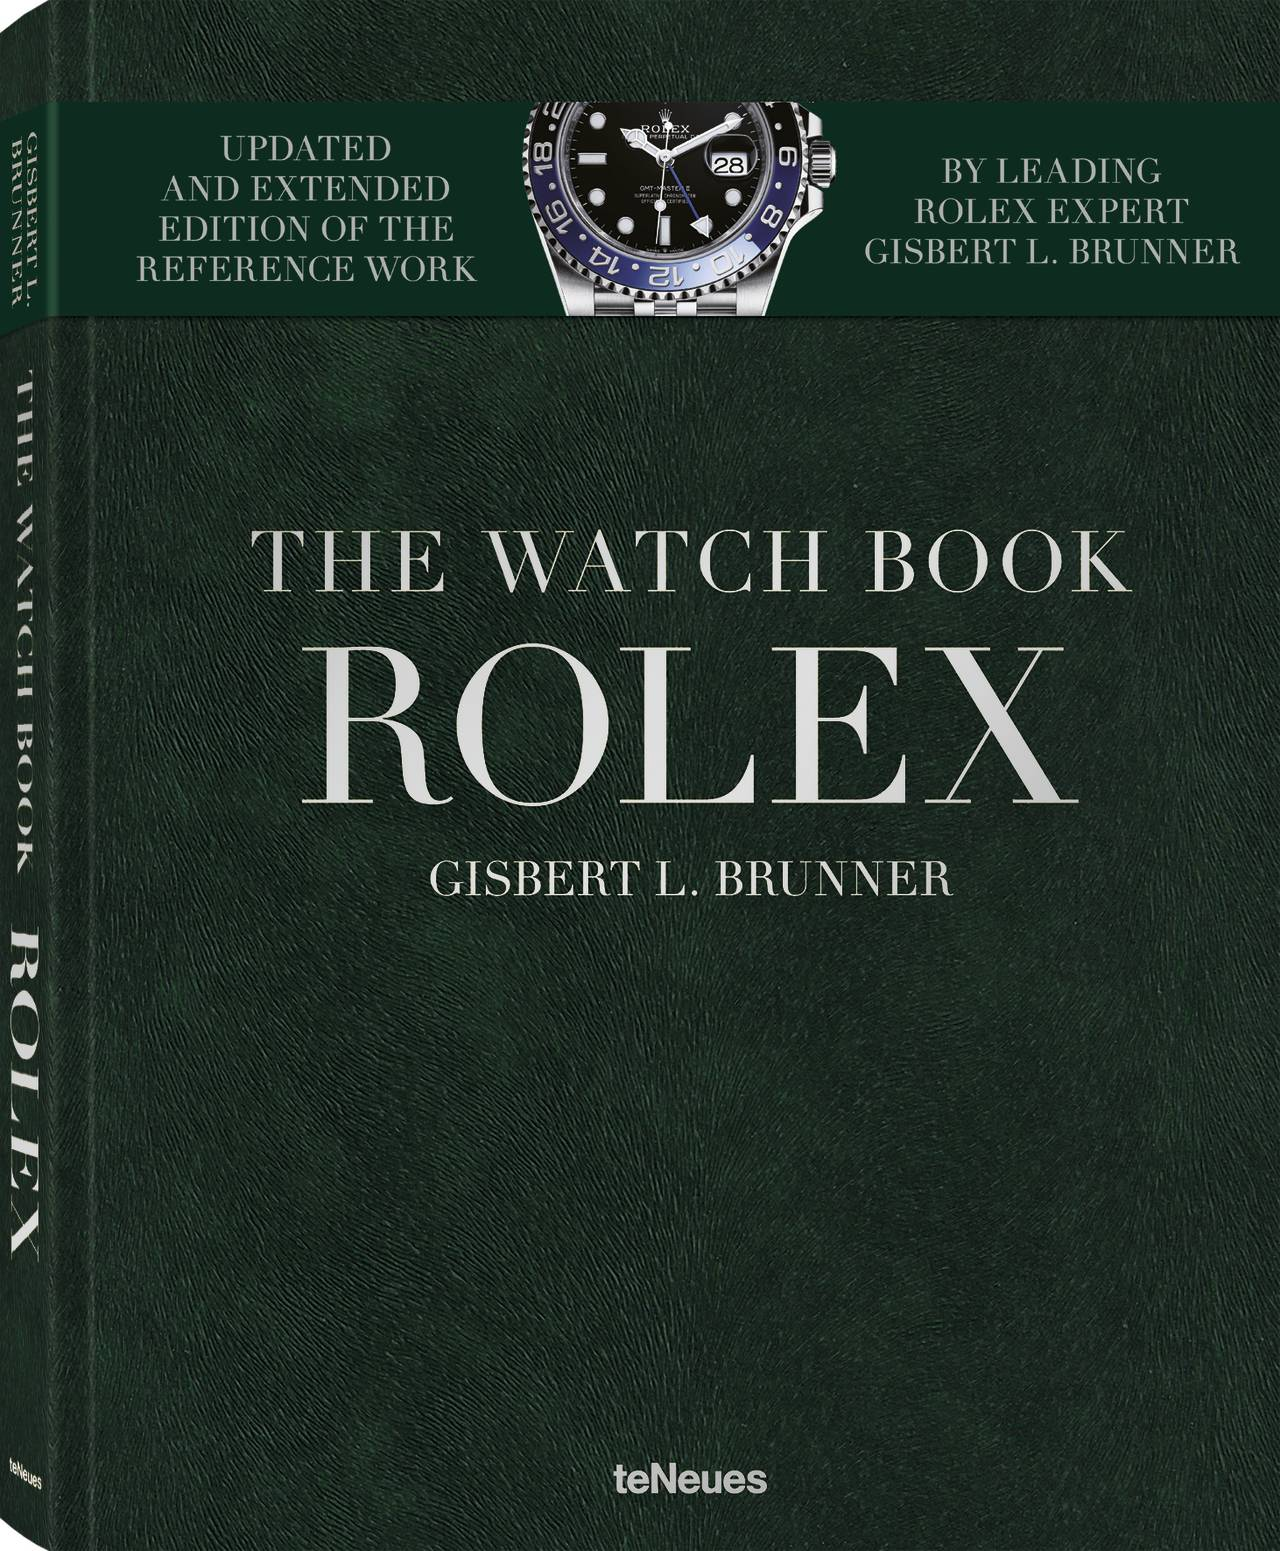 © THE WATCH BOOK ROLEX - Updated and Extended Edition of the Reference Work by Gisbert L. Brunner, published by teNeues, www.teneues.com. Photo © Courtesy of Rolex